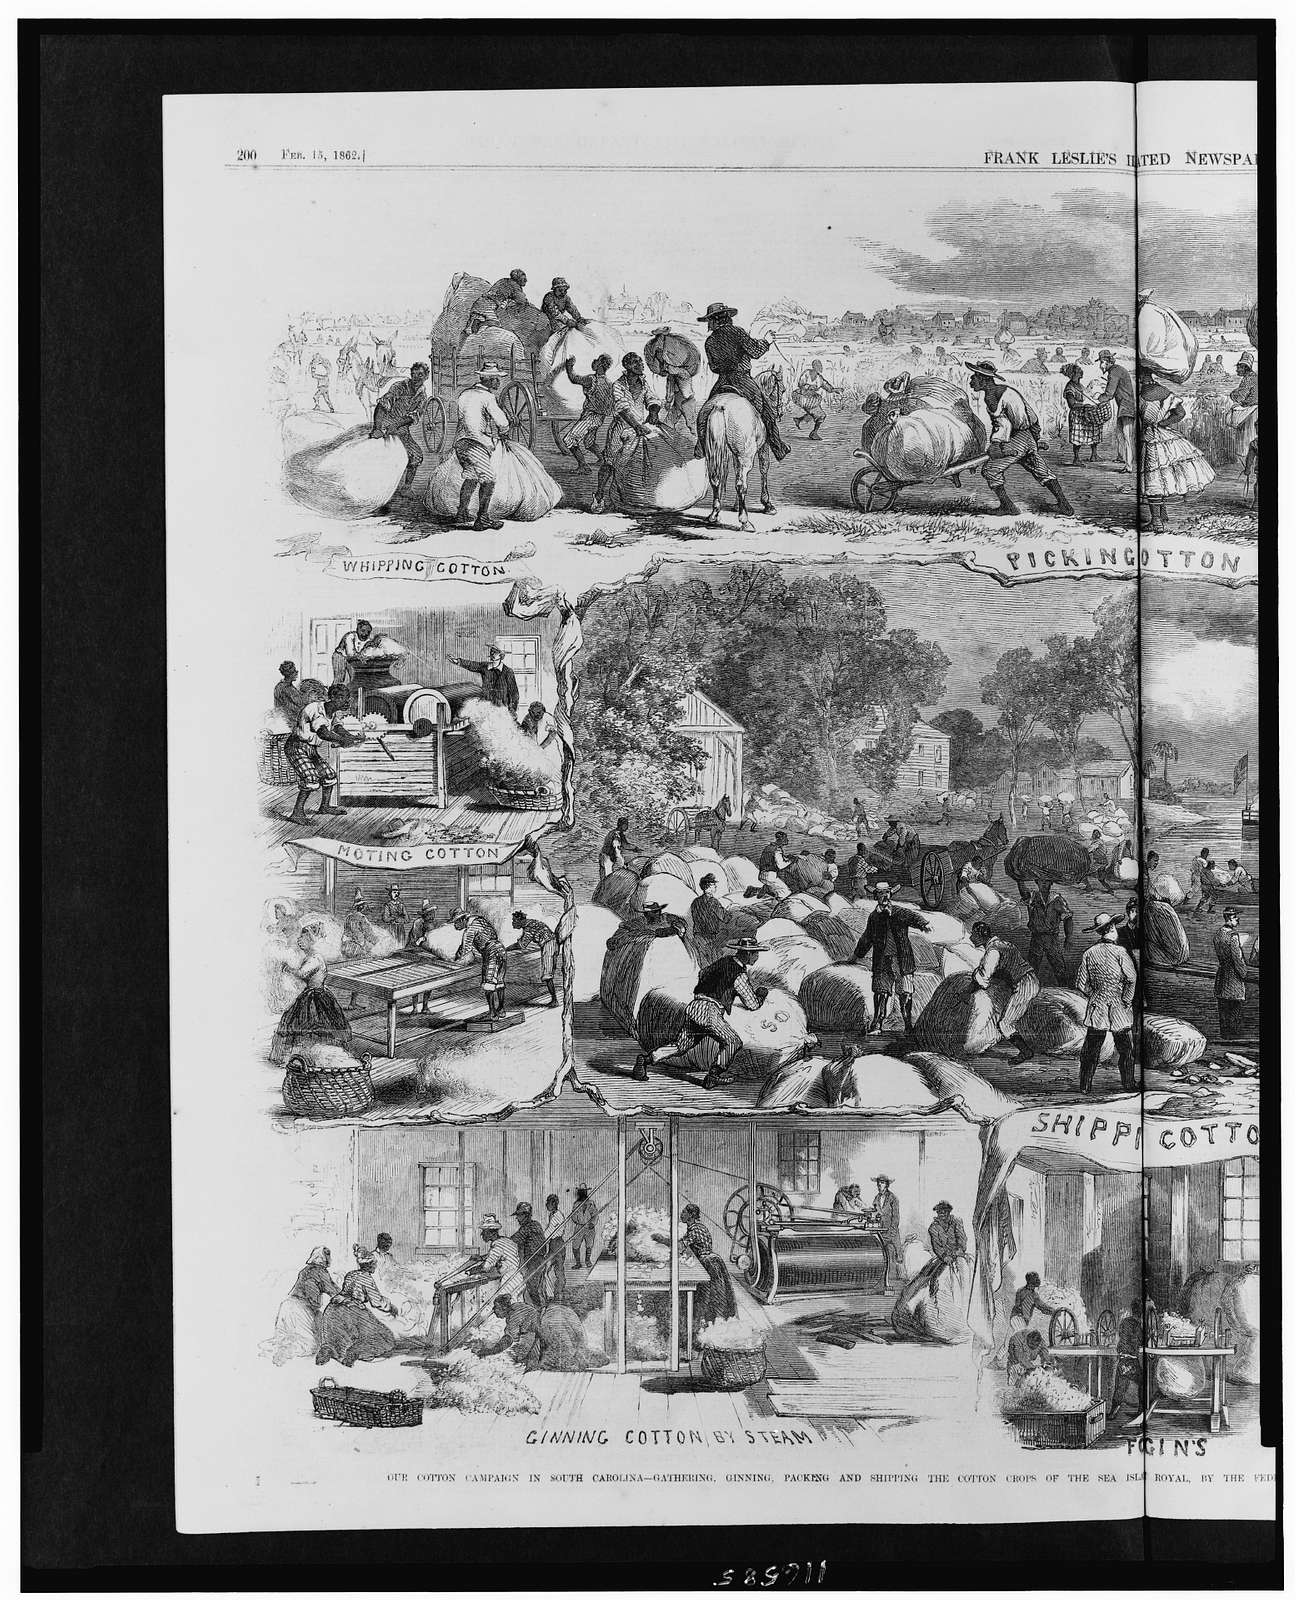 Our cotton campaign in South Carolina - gathering, ginning, packing and shipping the cotton crops of the Sea Islands, Port Royal, by the Federal Army, under General Sherman / from sketches by our special artist accompanying the expedition.